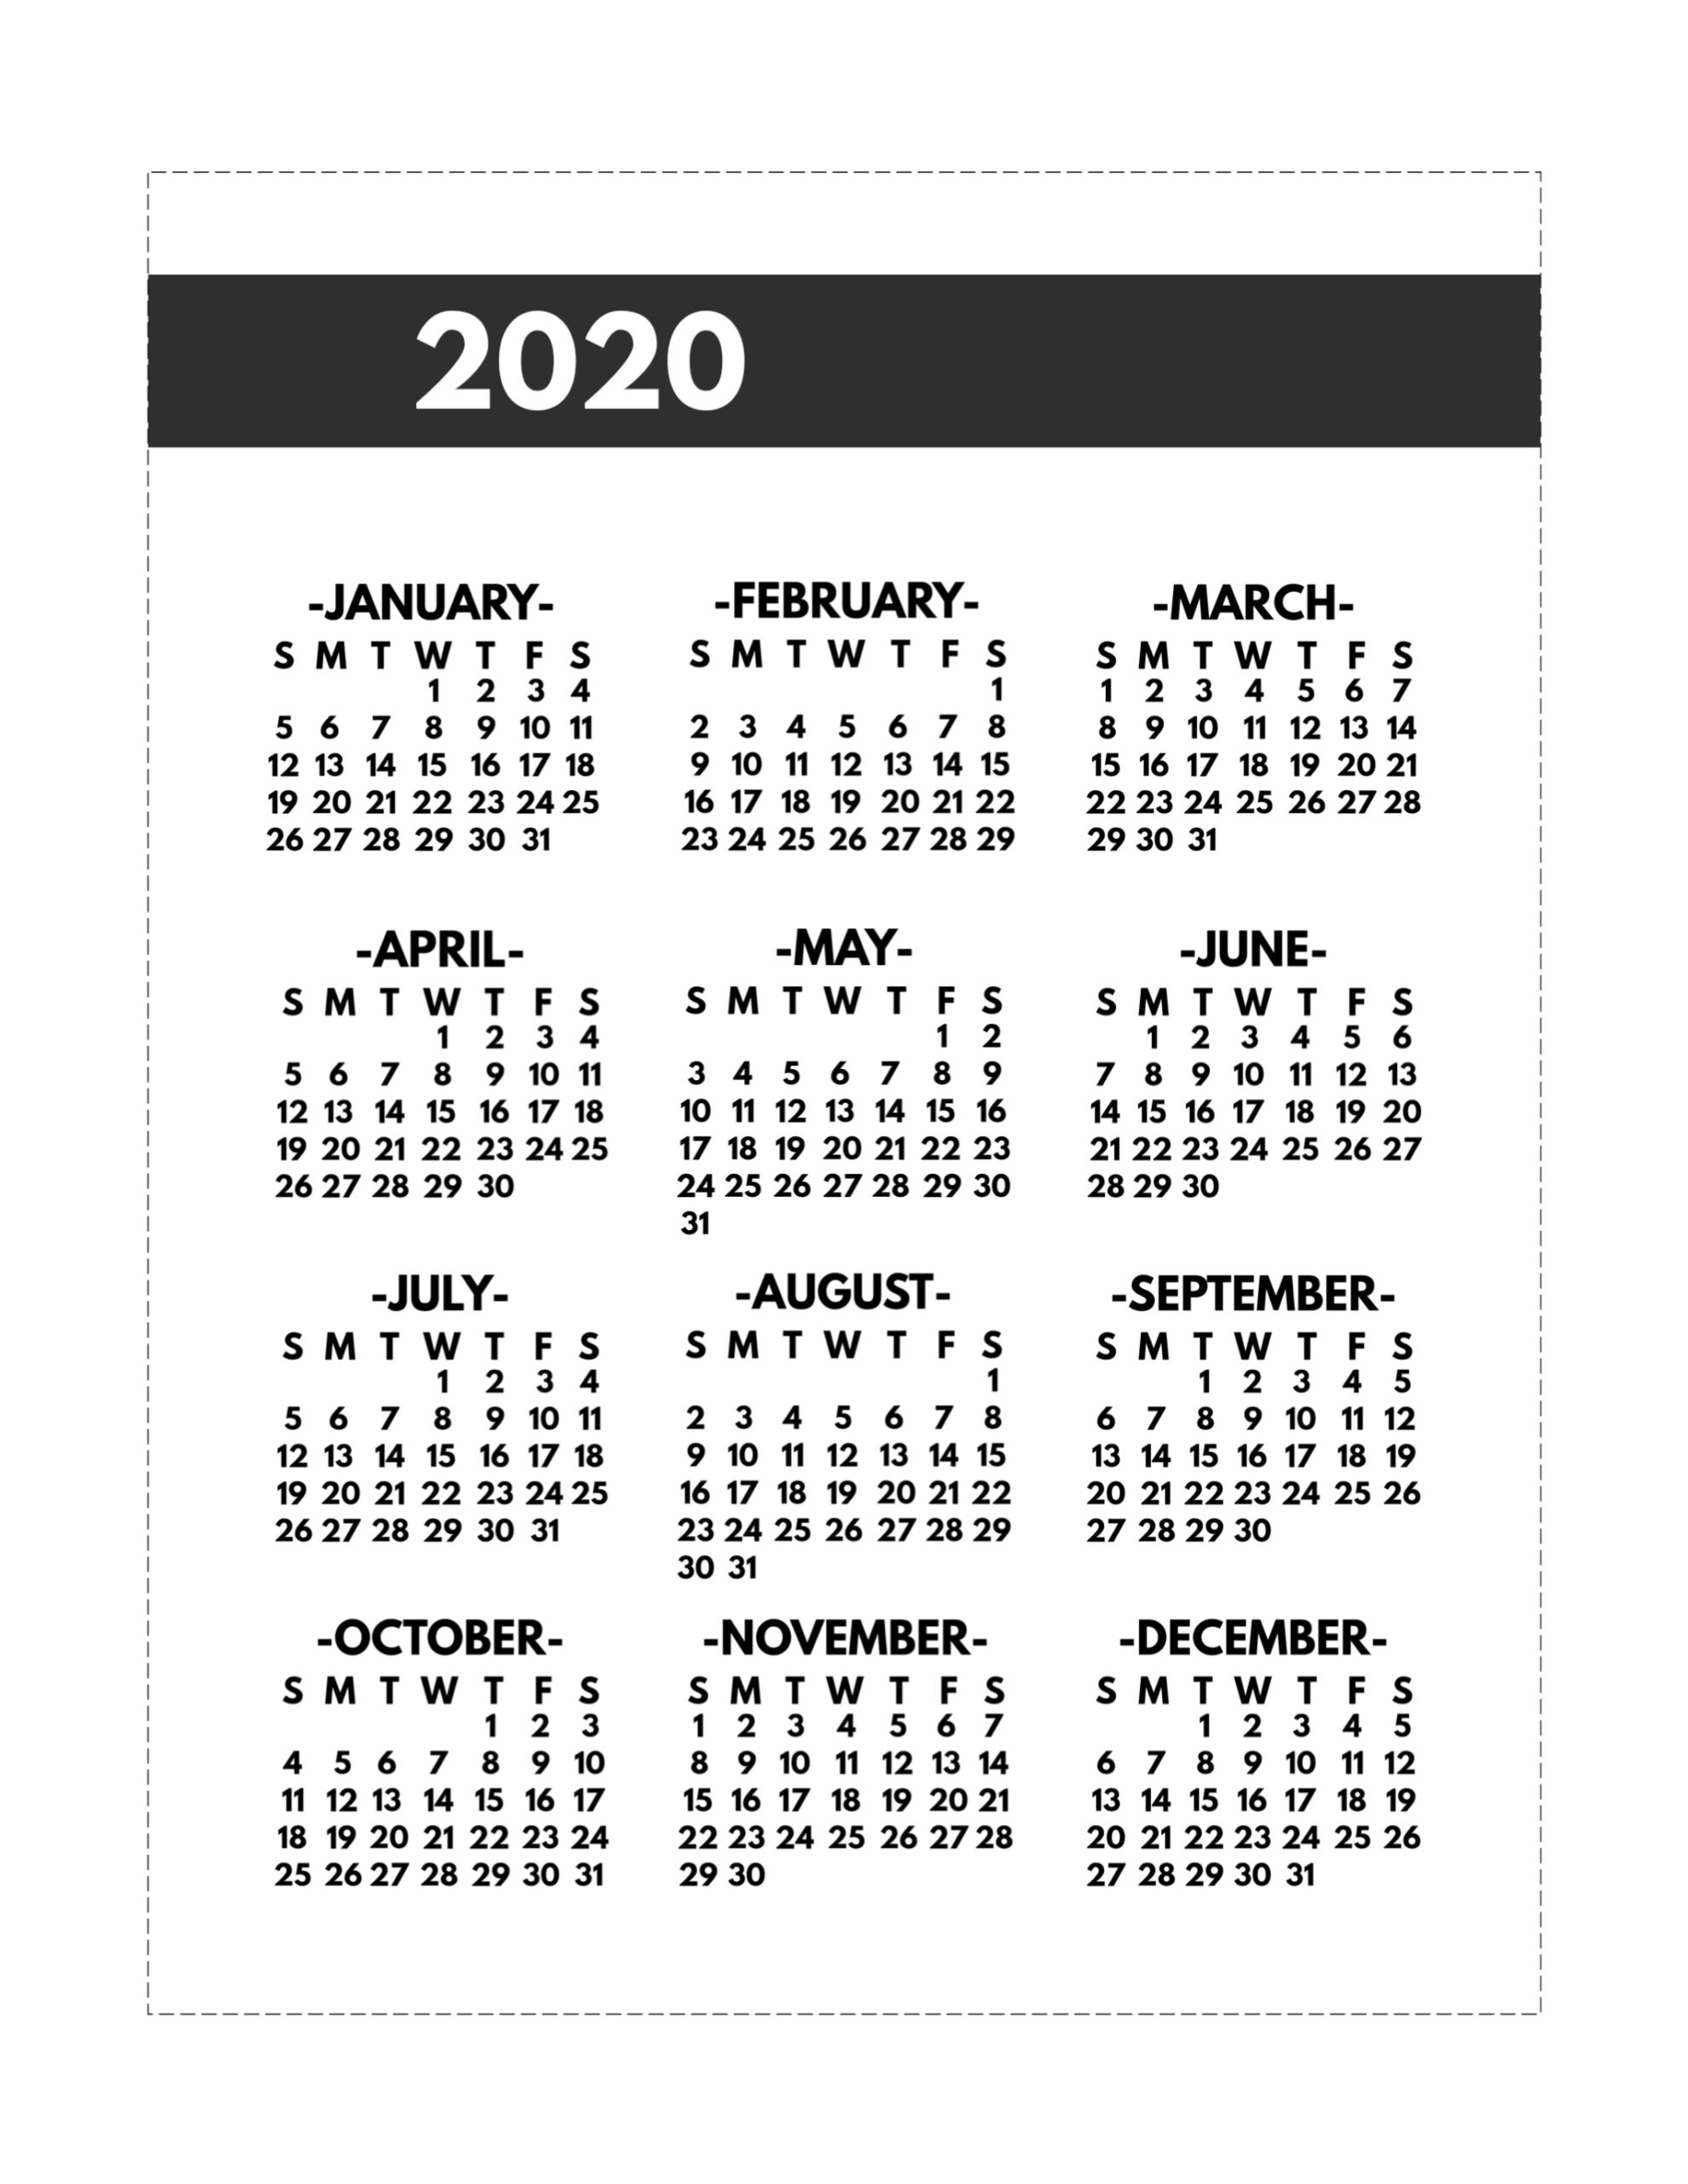 2020 Printable One Page Year At A Glance Calendar - Paper regarding Printable 2020 Calender At A Glance